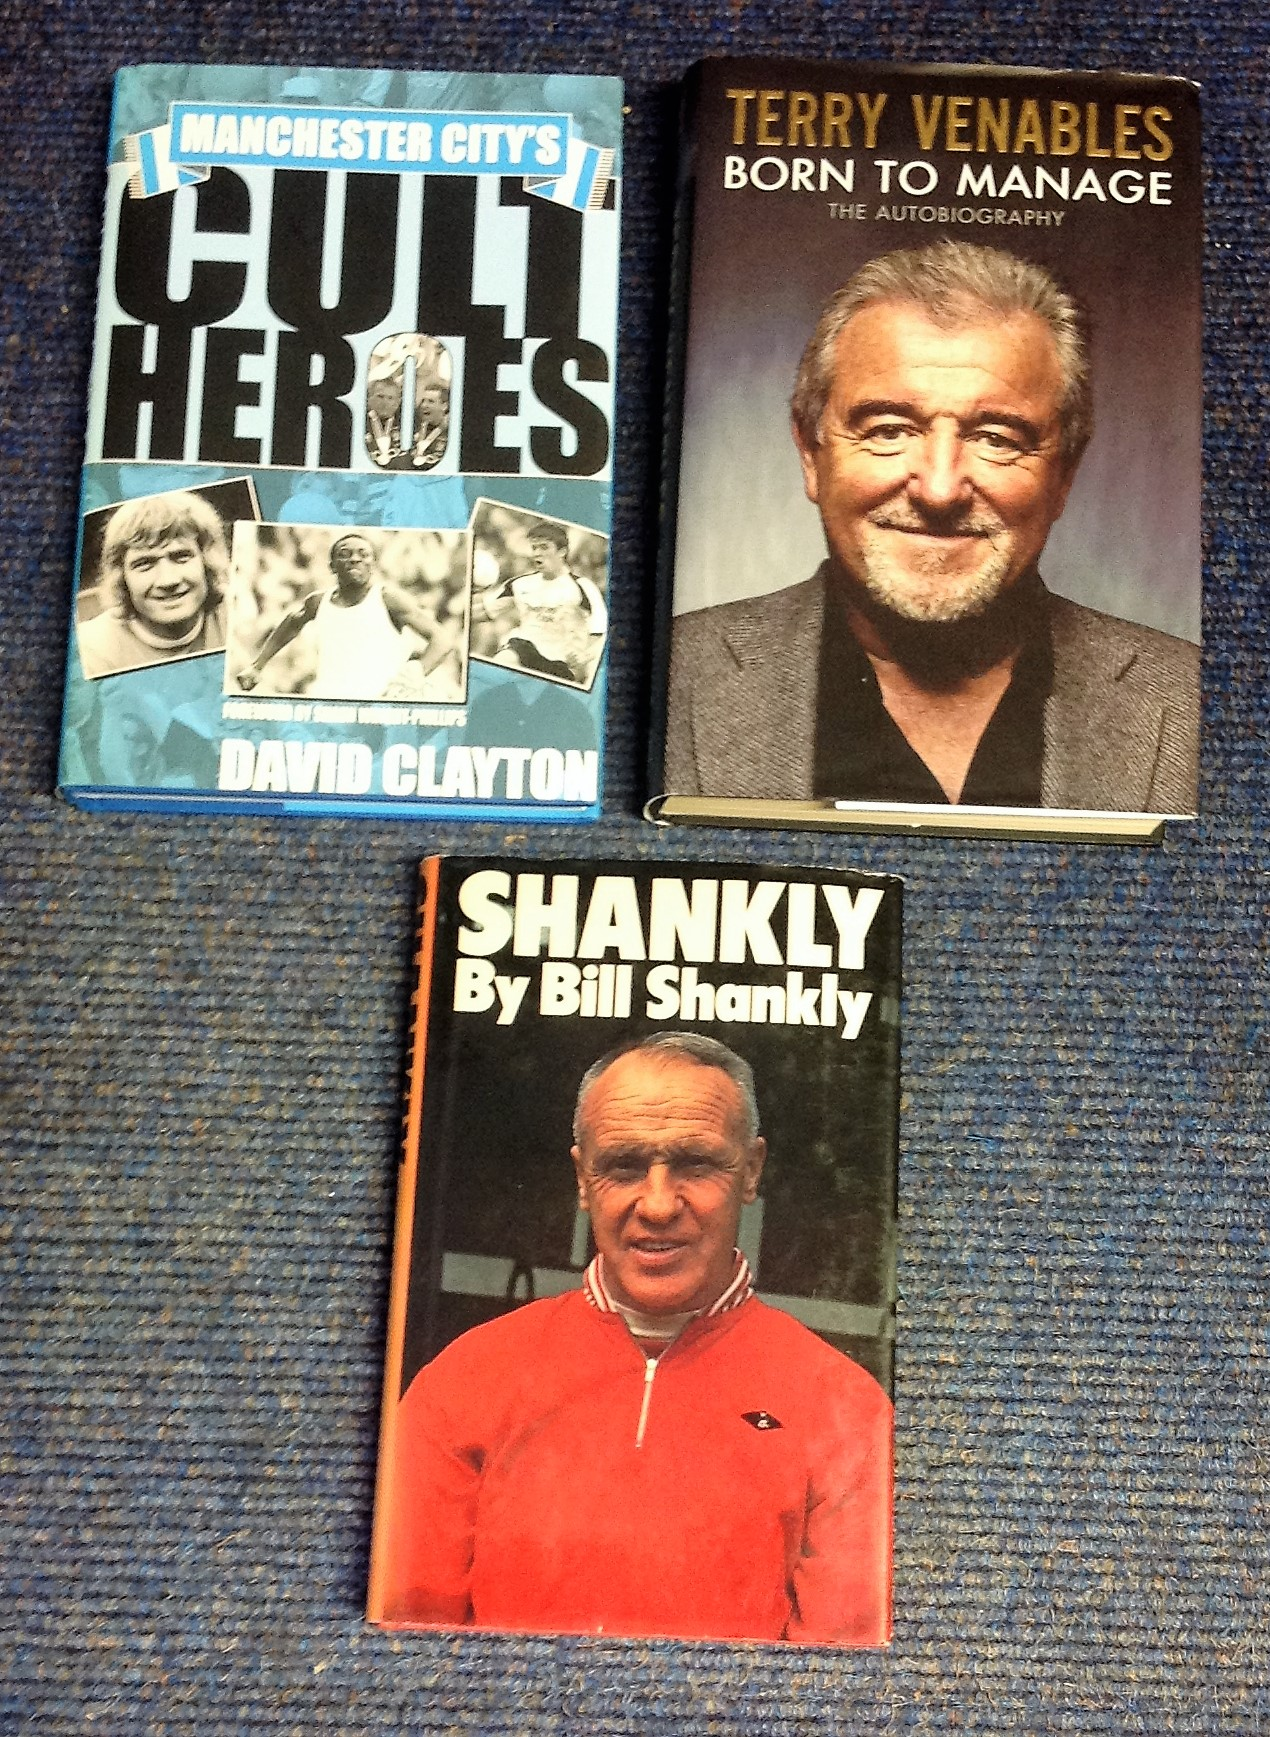 Lot 10 - Football collection 3, unsigned hardback books titles included are Manchester Citys cult heroes by